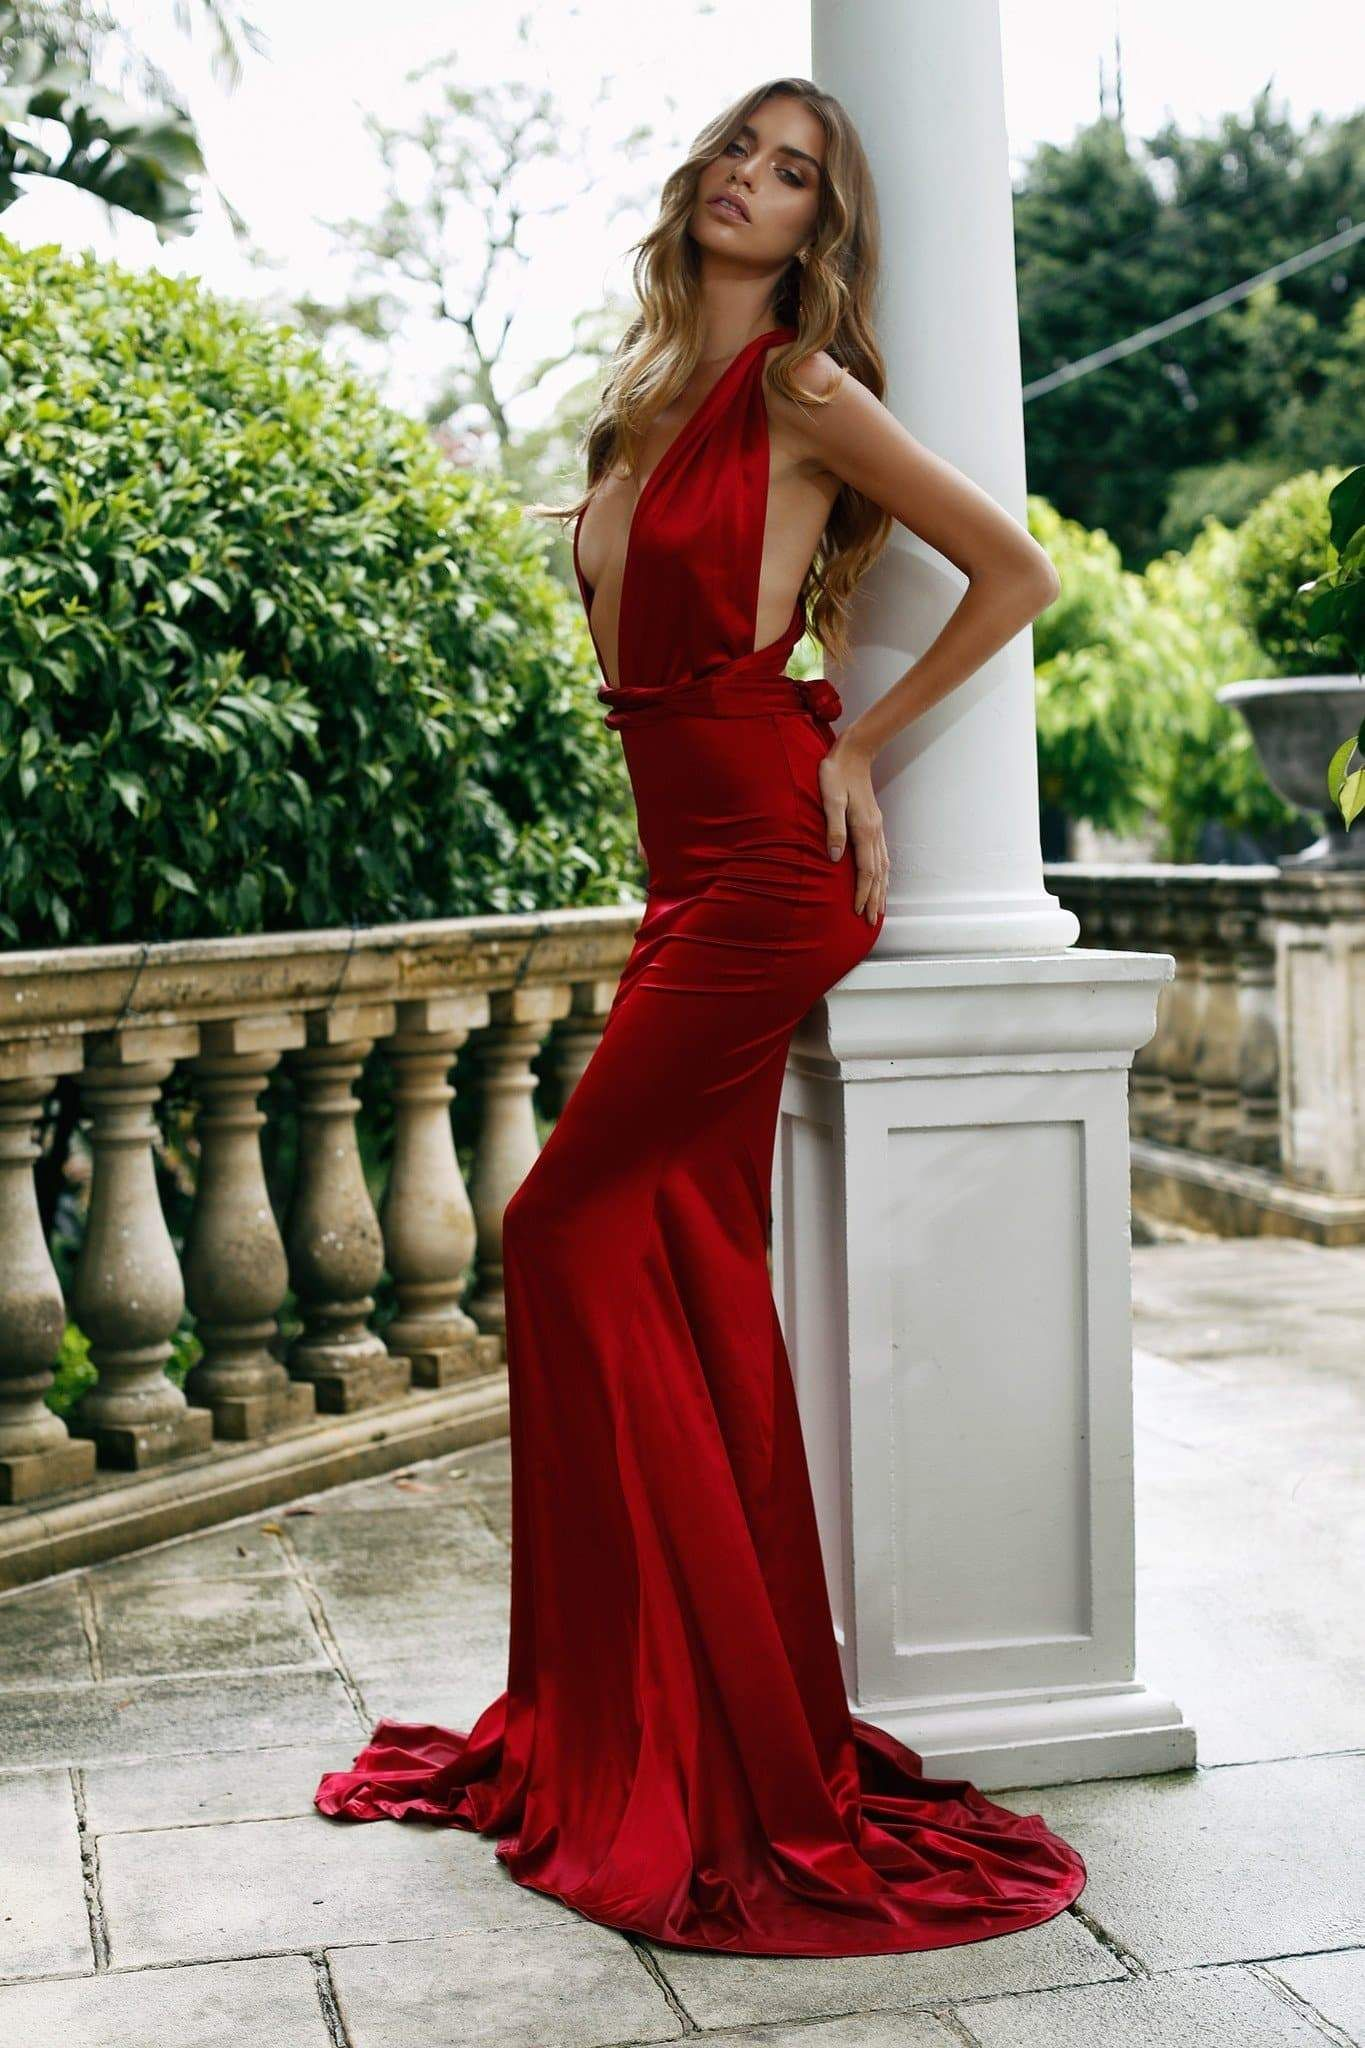 Lena satin gown wine red red silk dress beautiful